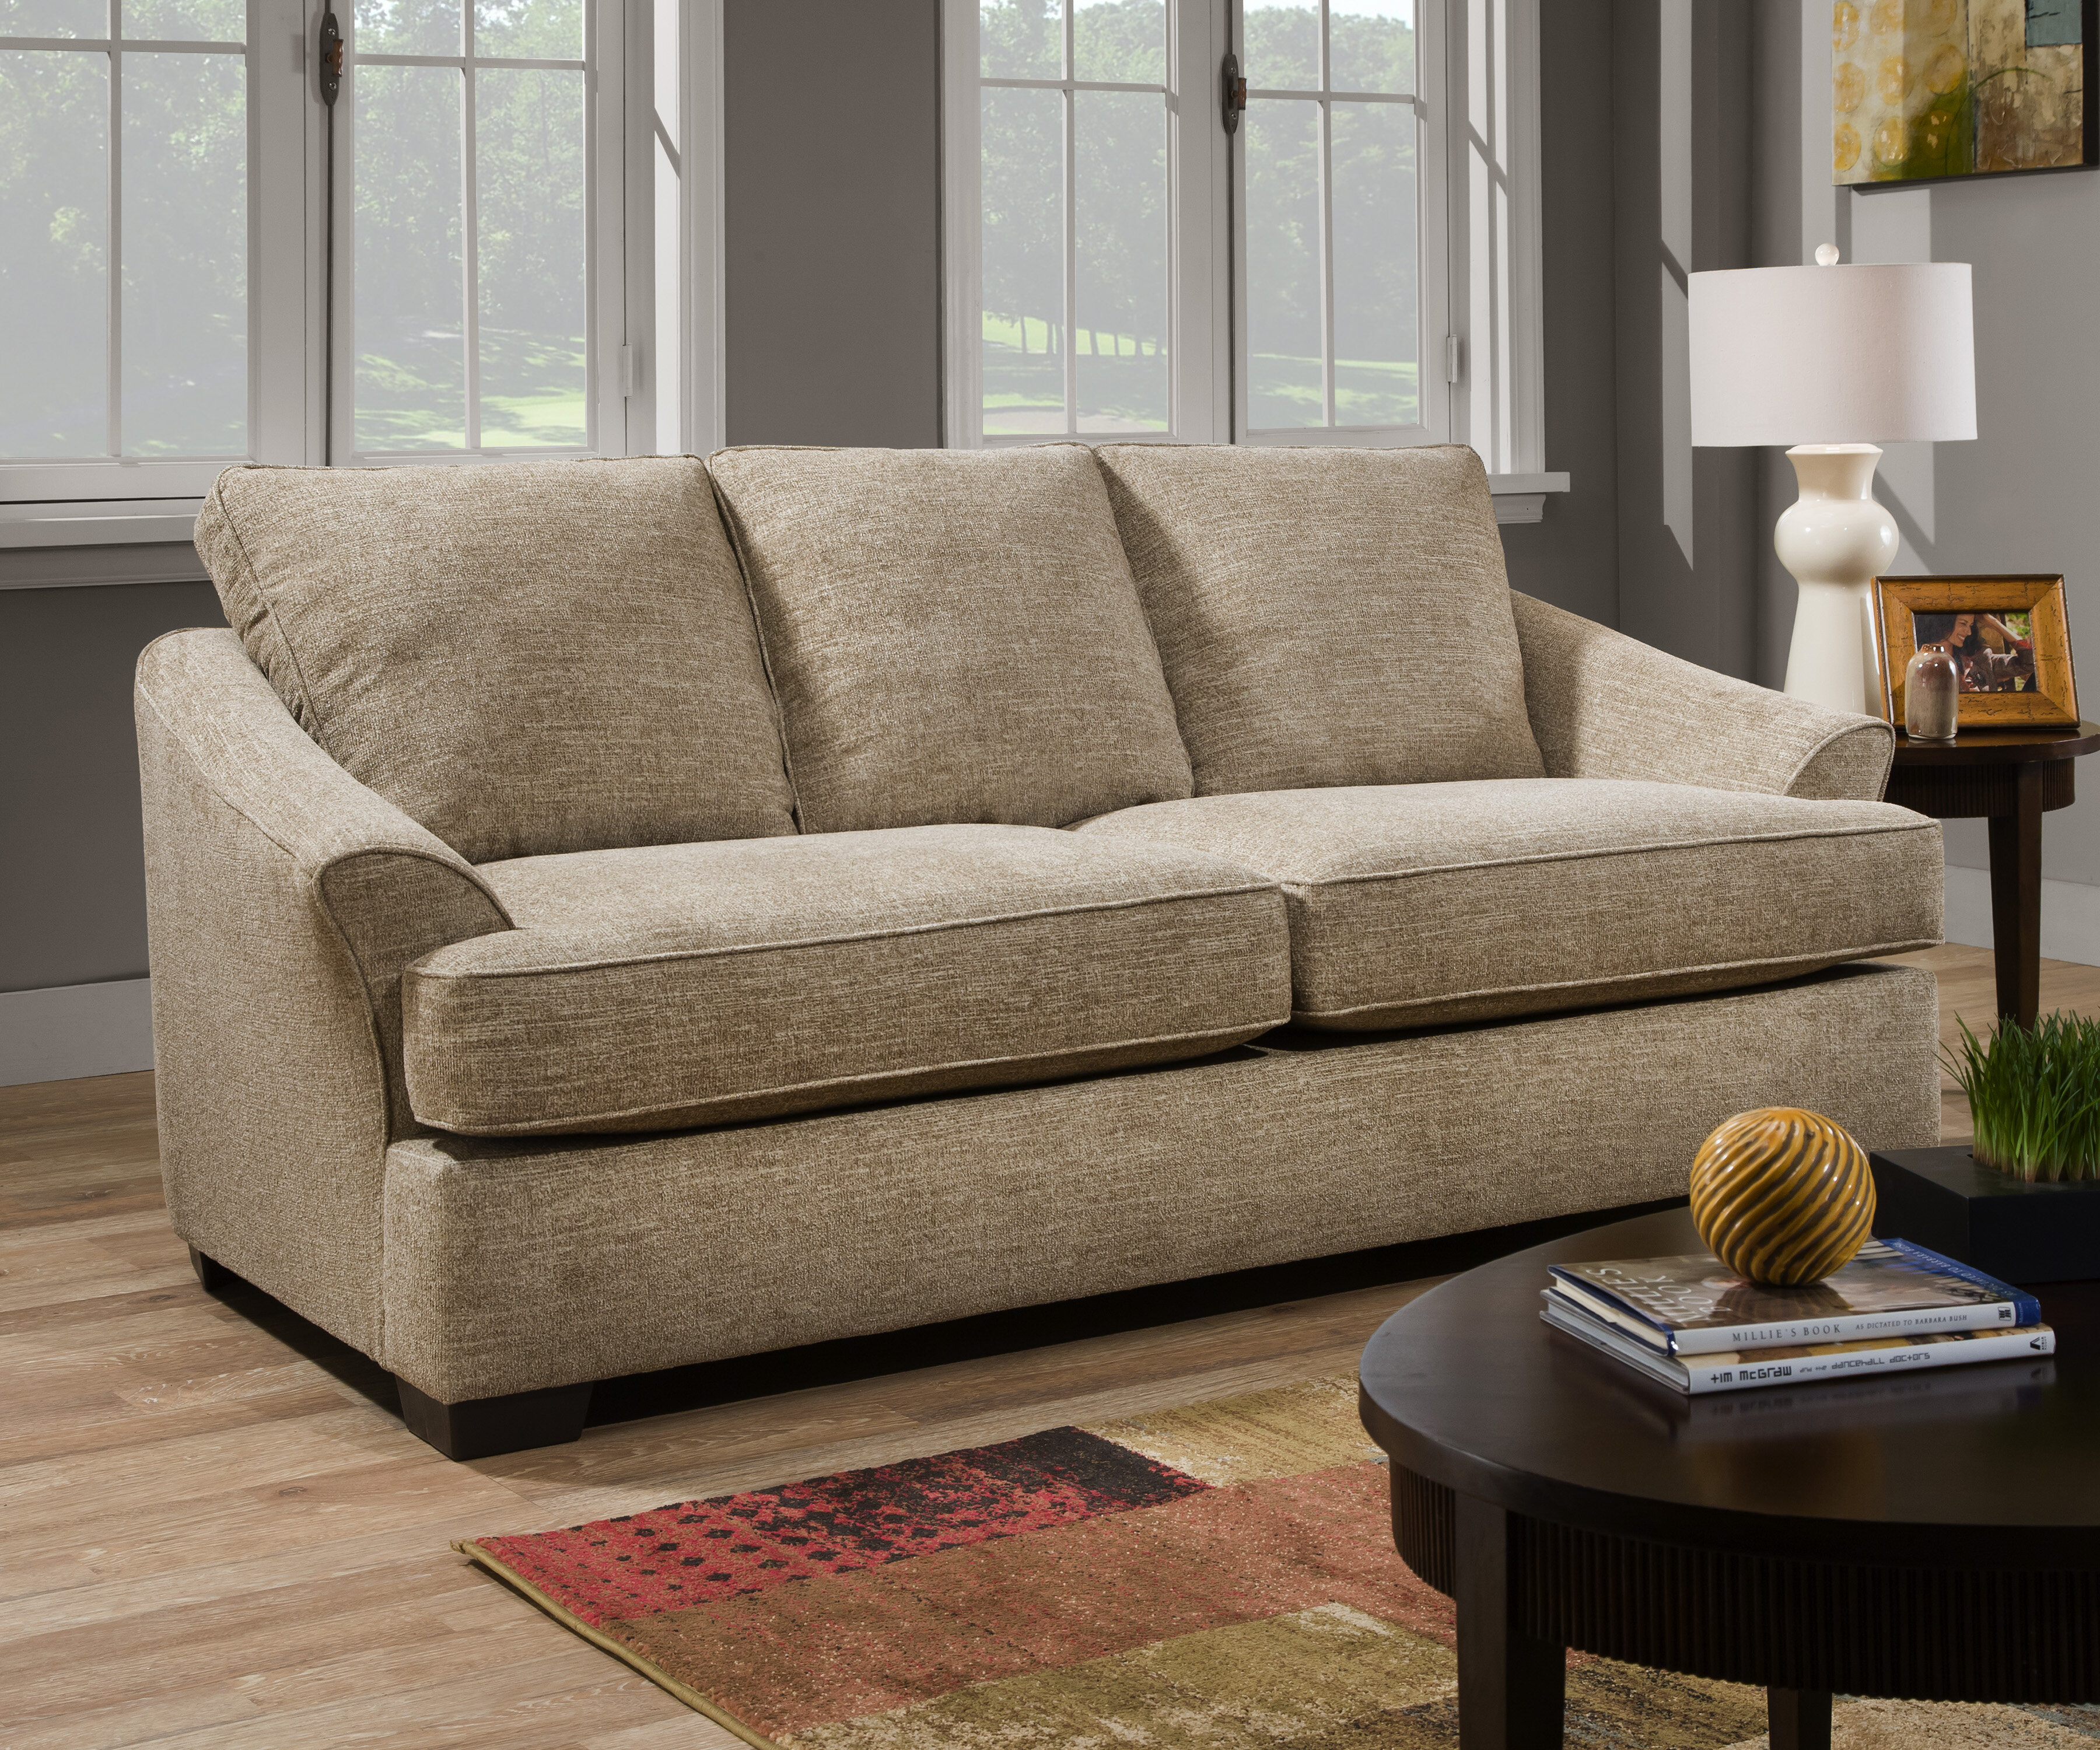 Andover Mills Simmons Upholstery Forreston Upholstery Sofa Bed  ~ Clarkedale Sleeper Sofa